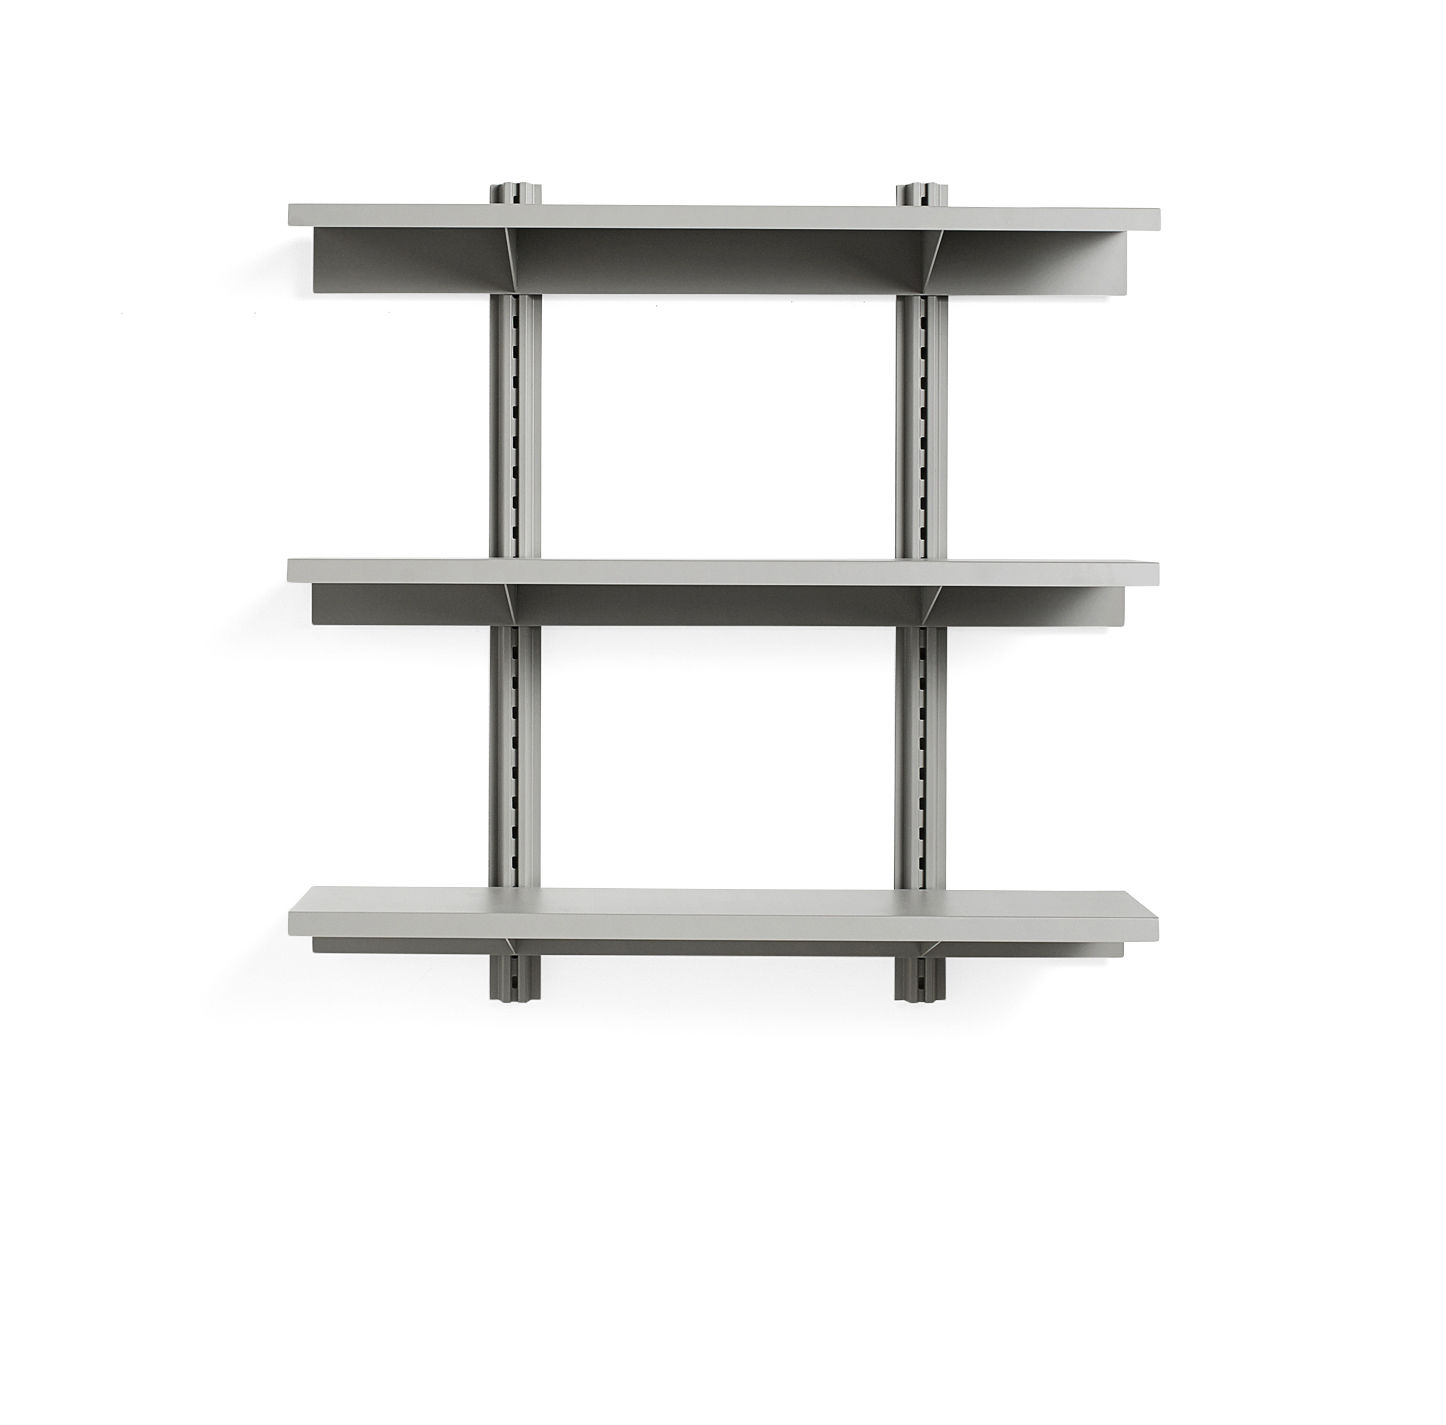 Furniture - Bookcases & Bookshelves - Standard Issue Shelf - / L 120 x H 120 cm - Steel by Hay - Grey - Epoxy lacquered steel